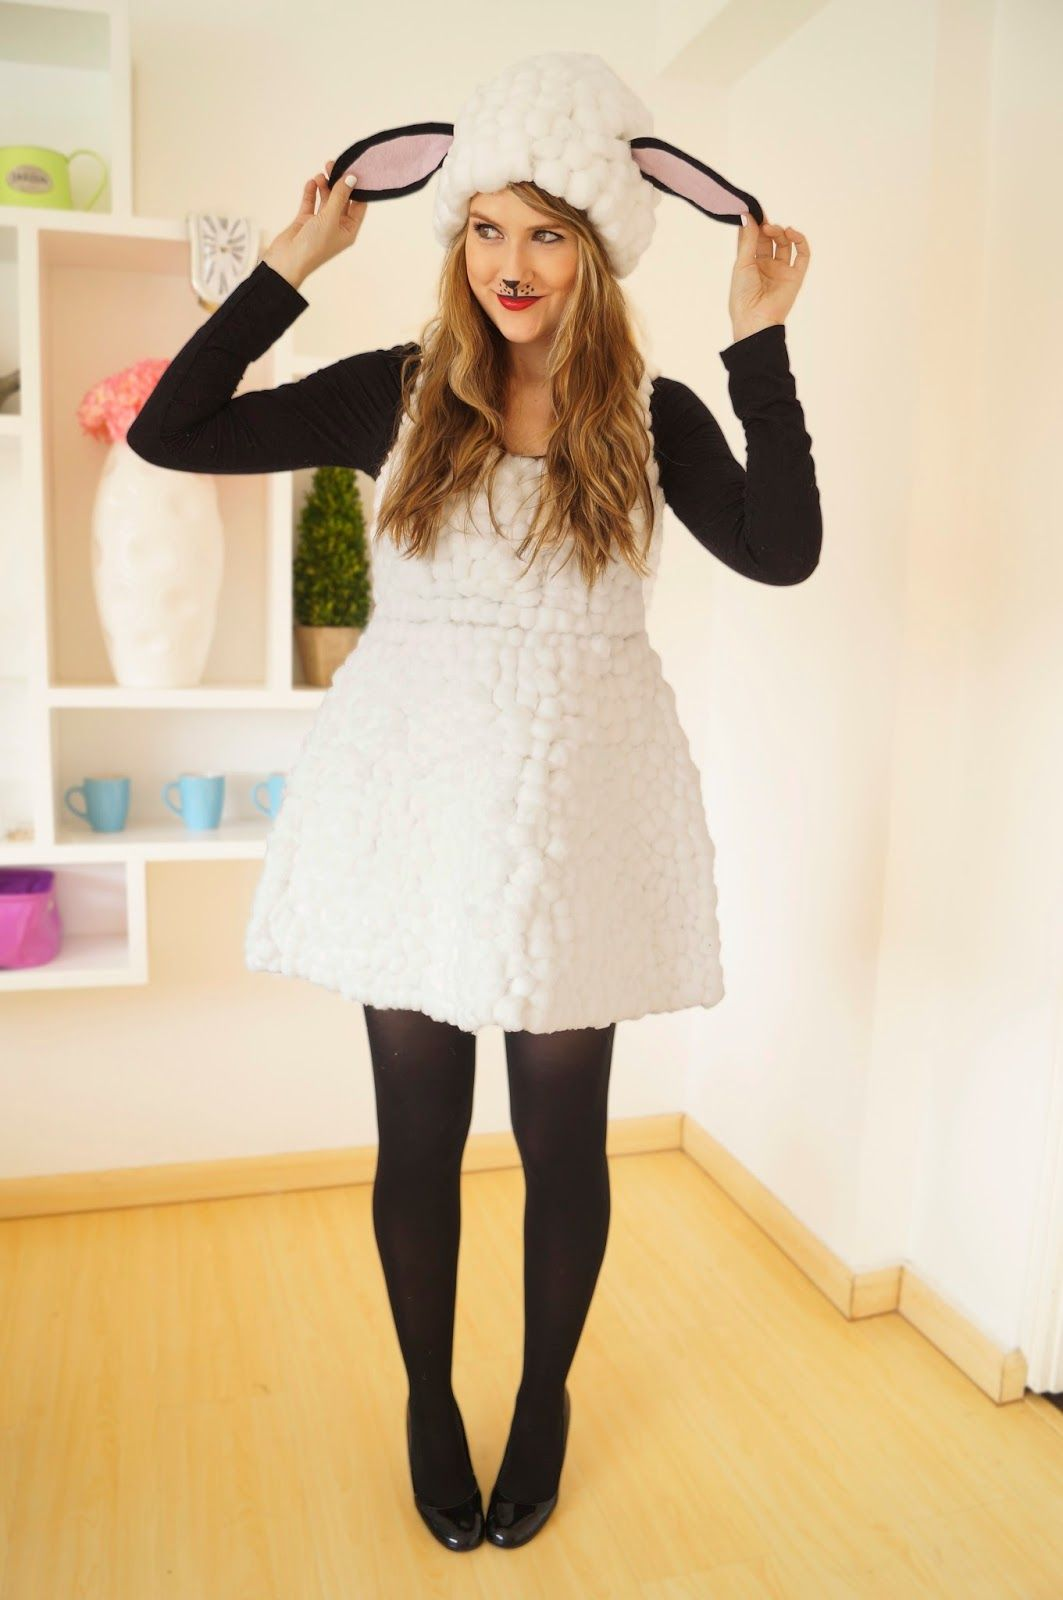 Easy Halloween Costume | DIY | Pinterest | Easy halloween costumes ...